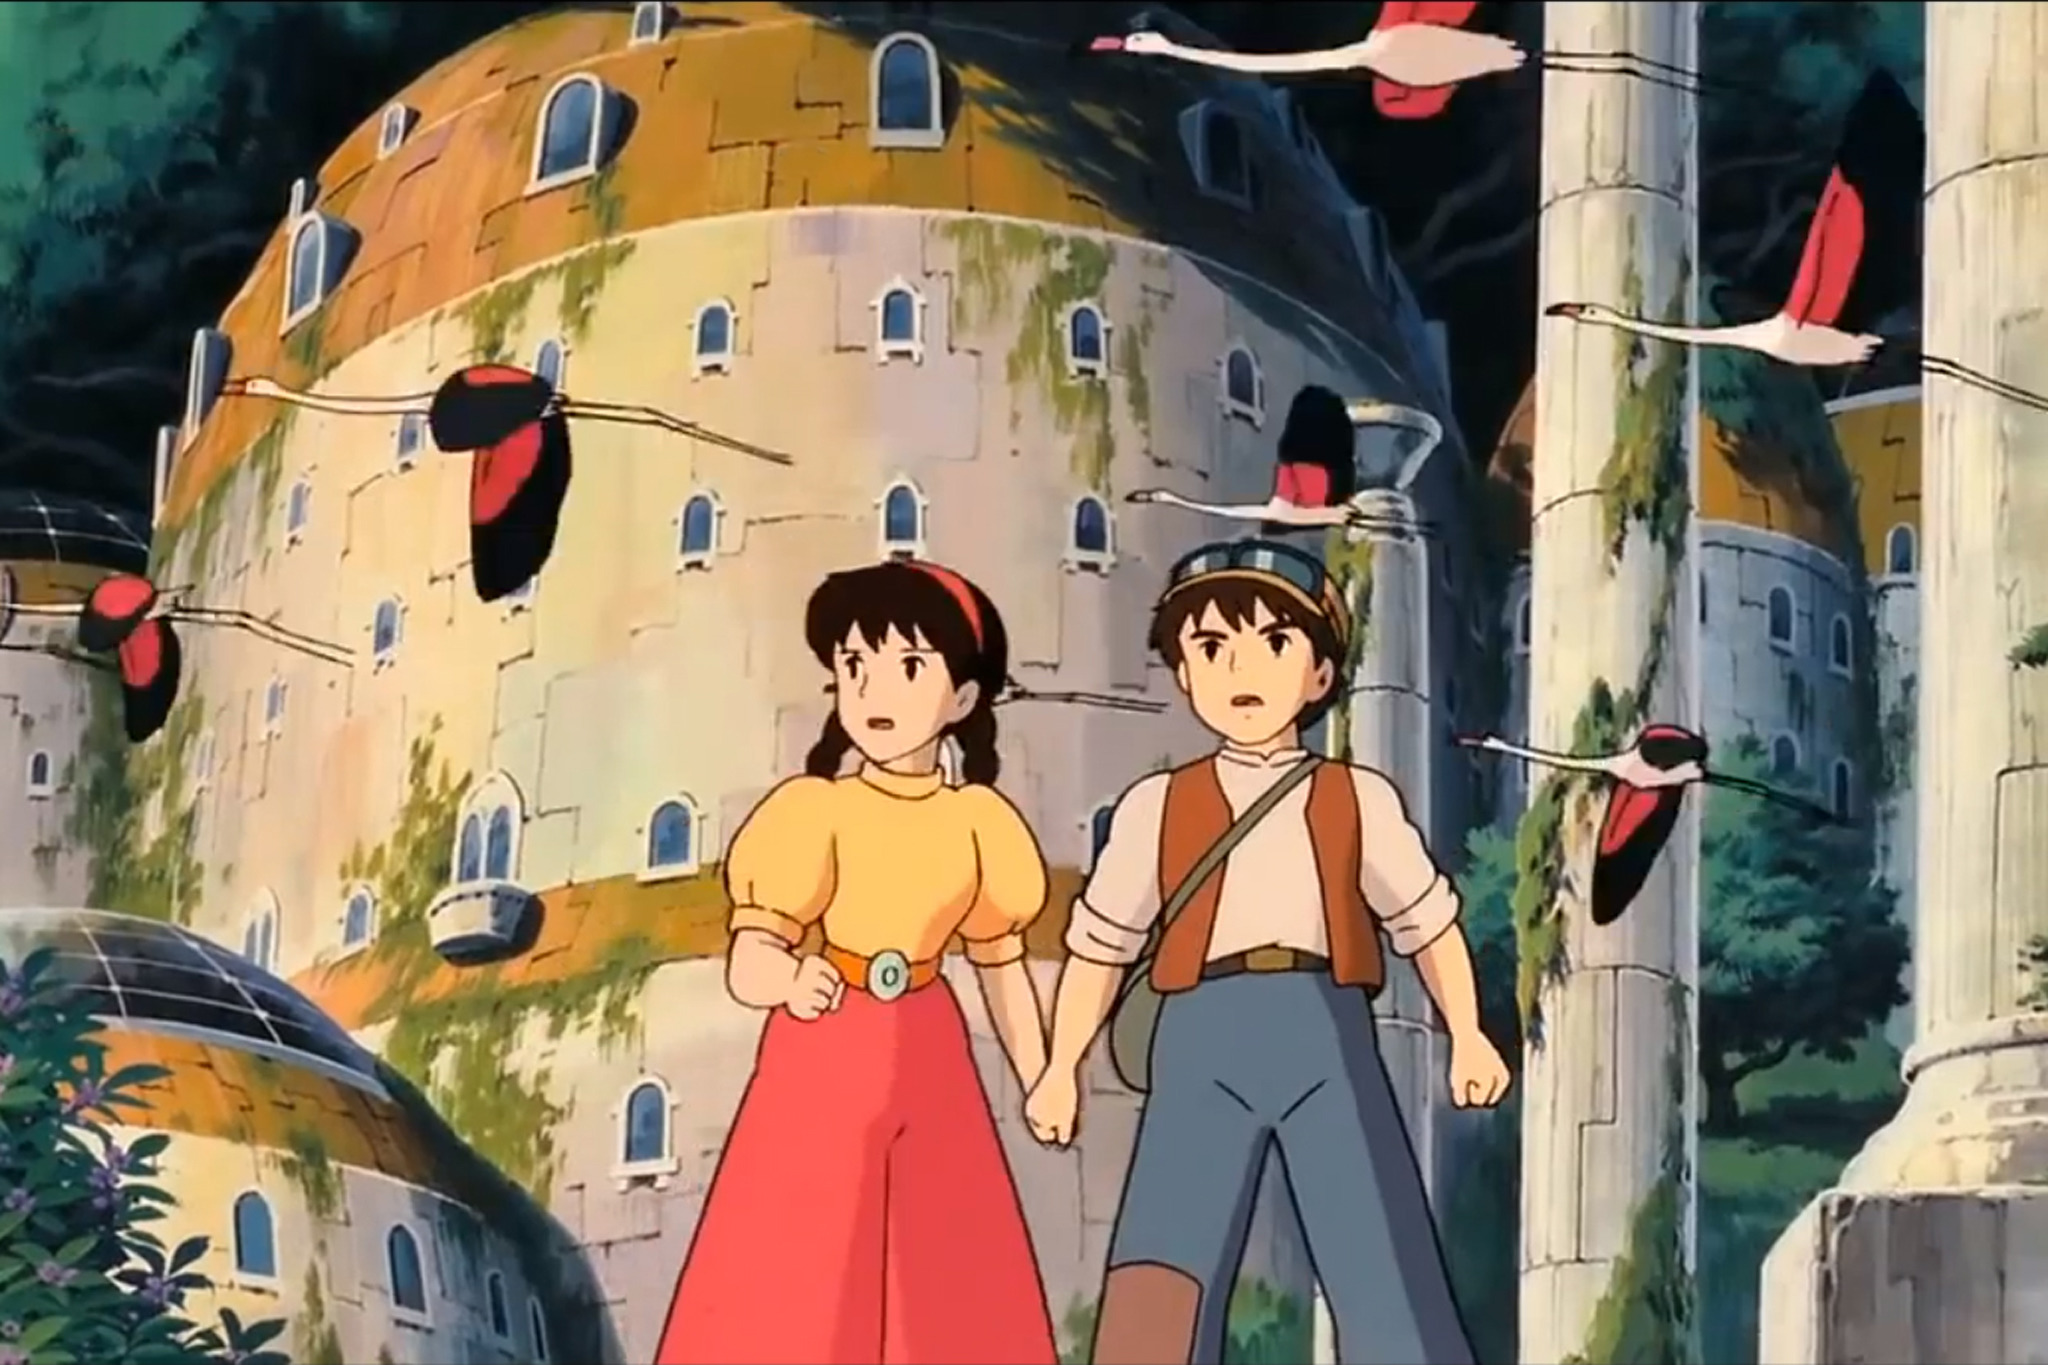 Best Studio Ghibli films: Castle in the Sky